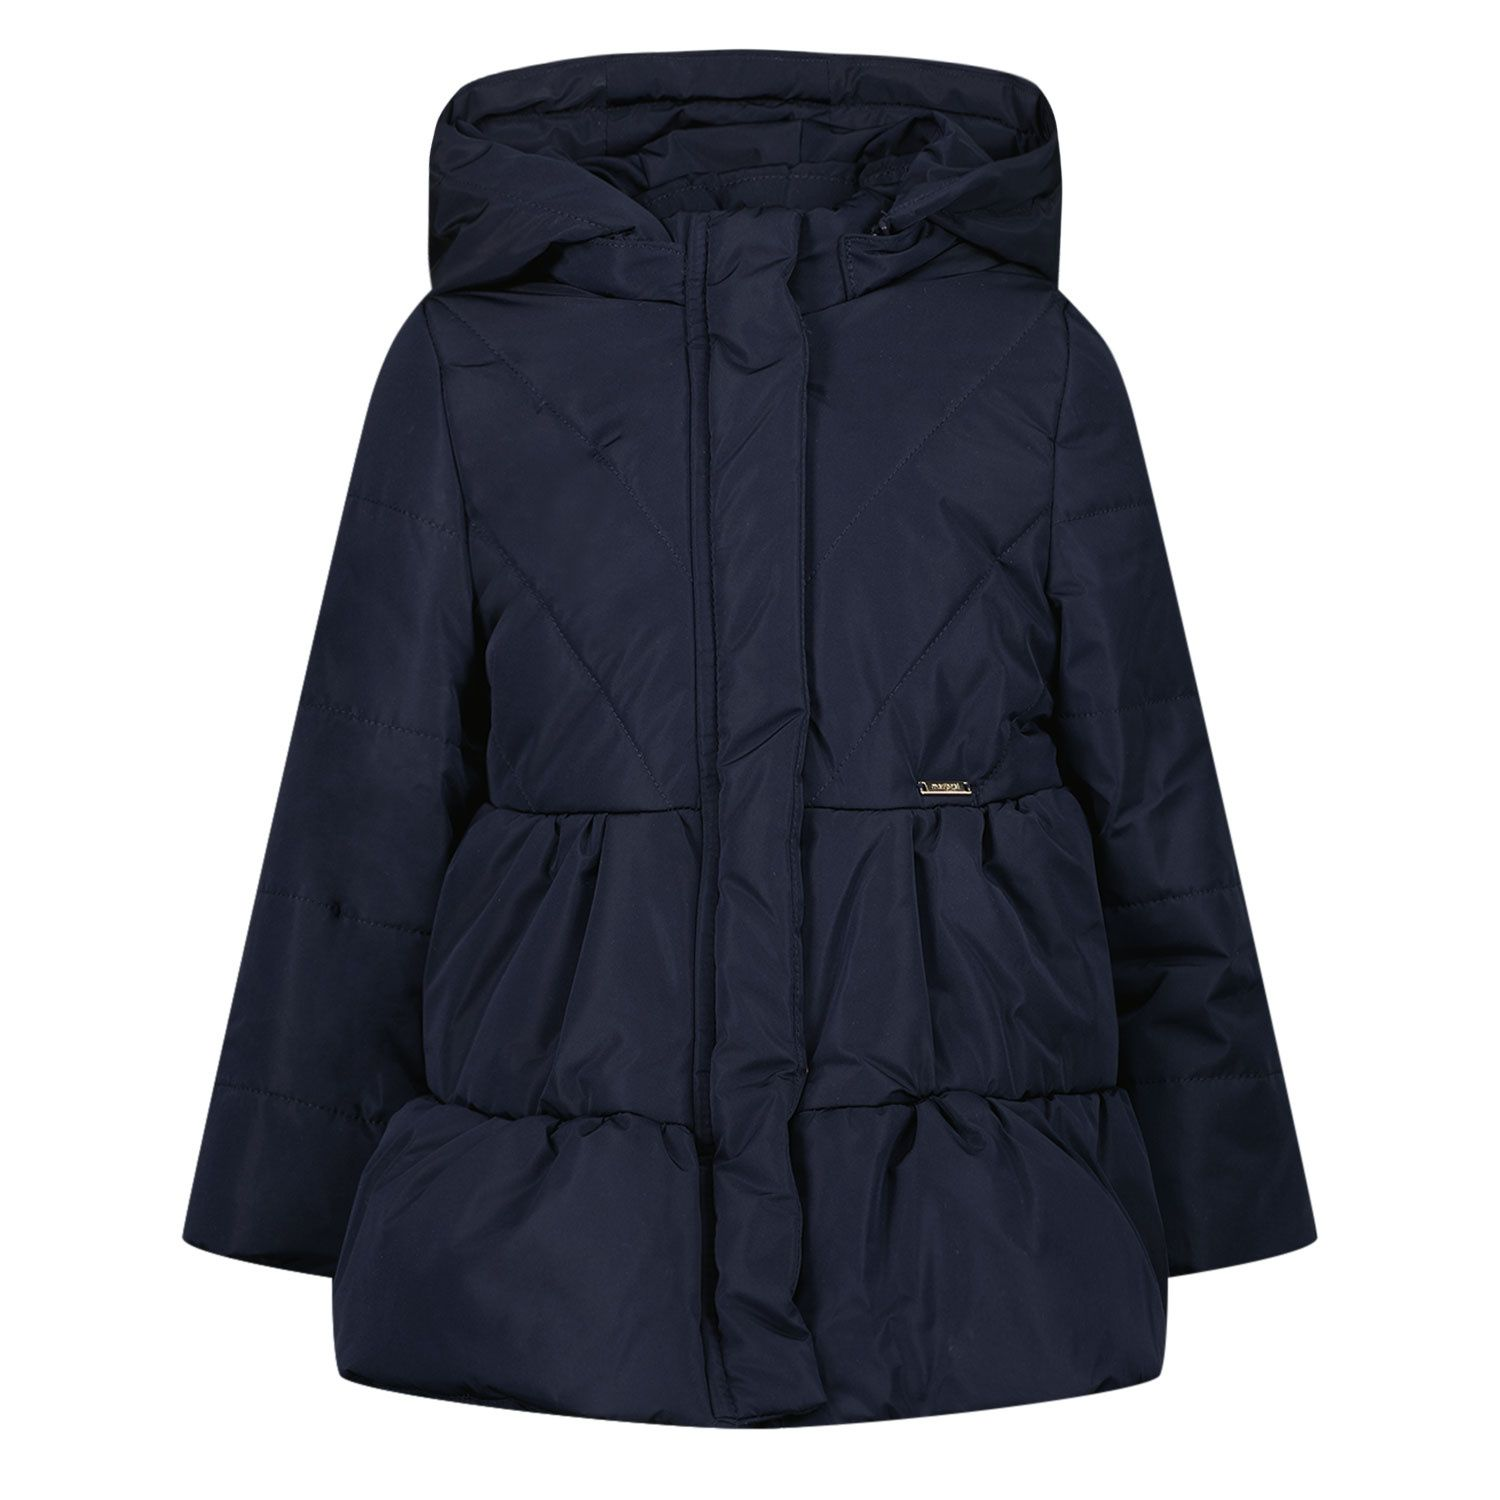 Picture of Mayoral 2438 baby coat navy